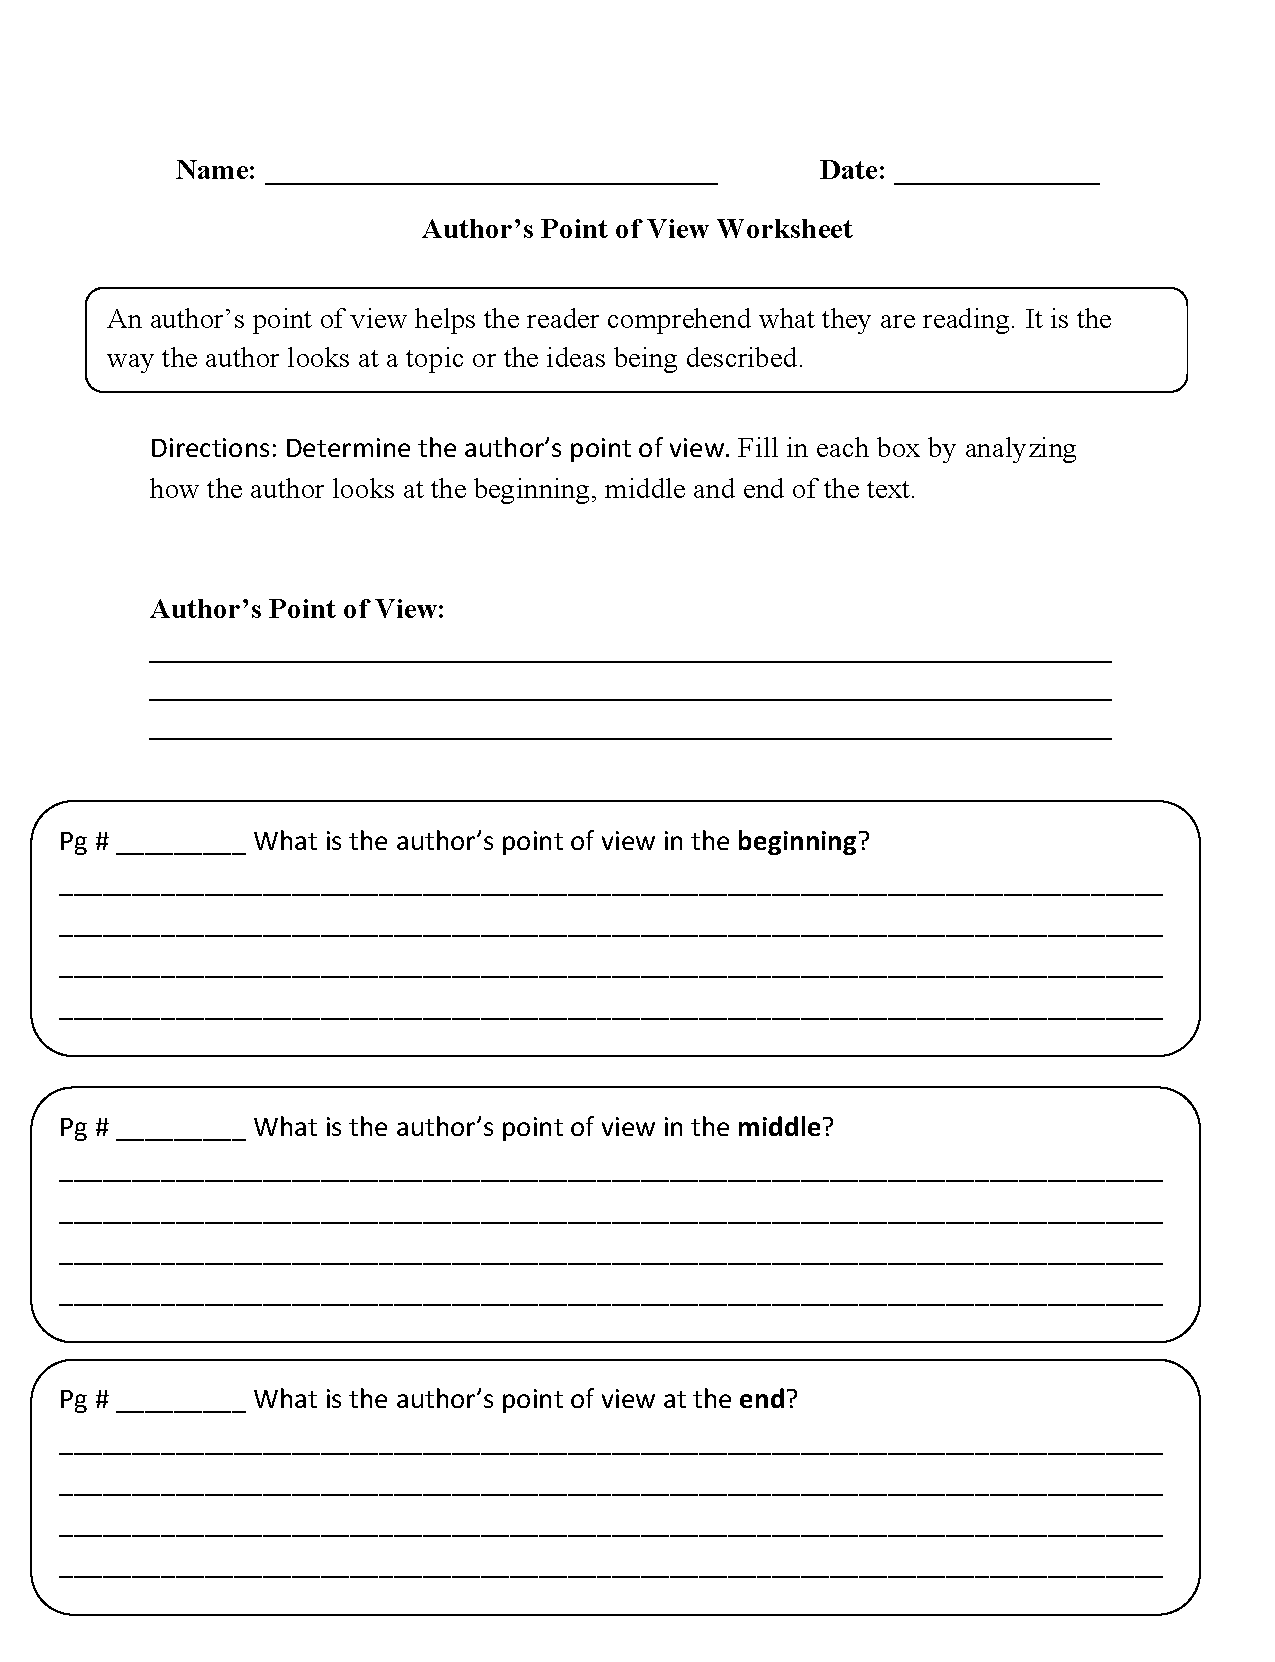 Weirdmailus  Splendid Englishlinxcom  Point Of View Worksheets With Marvelous Point Of View Worksheets With Easy On The Eye Being A Good Friend Worksheet Also Weight Loss Worksheet In Addition La Comida Worksheet And Free Printable Worksheets For Kindergarten Math As Well As Civil Surgeon Worksheet Additionally Letter P Preschool Worksheets From Englishlinxcom With Weirdmailus  Marvelous Englishlinxcom  Point Of View Worksheets With Easy On The Eye Point Of View Worksheets And Splendid Being A Good Friend Worksheet Also Weight Loss Worksheet In Addition La Comida Worksheet From Englishlinxcom